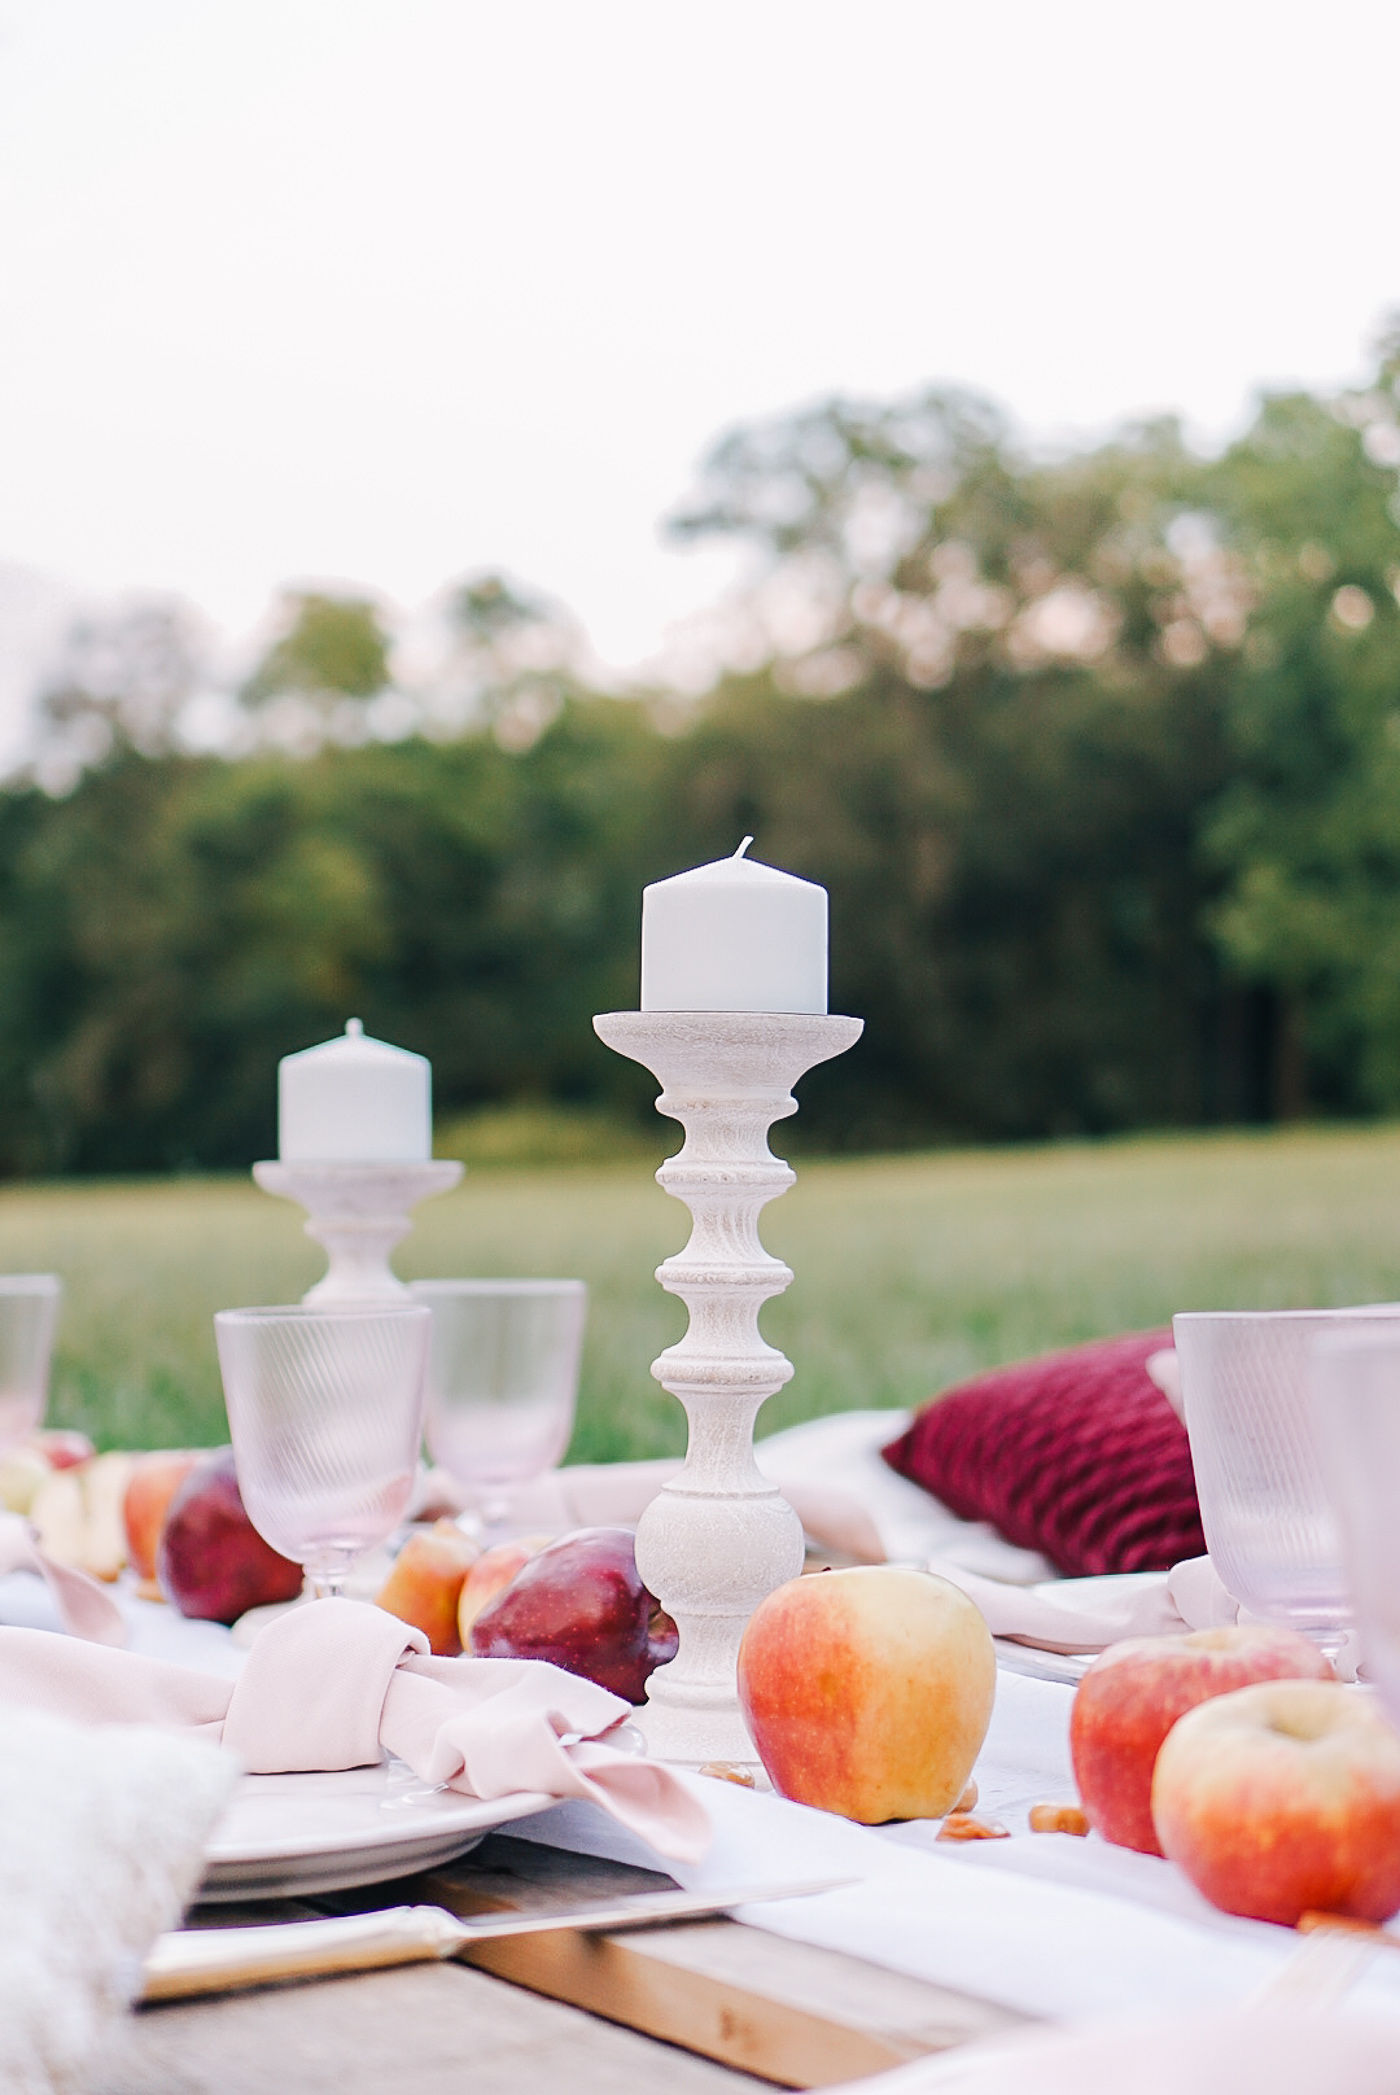 A casual outdoor pallet party with a caramel apple theme by Lauren Cermak of the Southern lifestyle blog, Going For Grace.